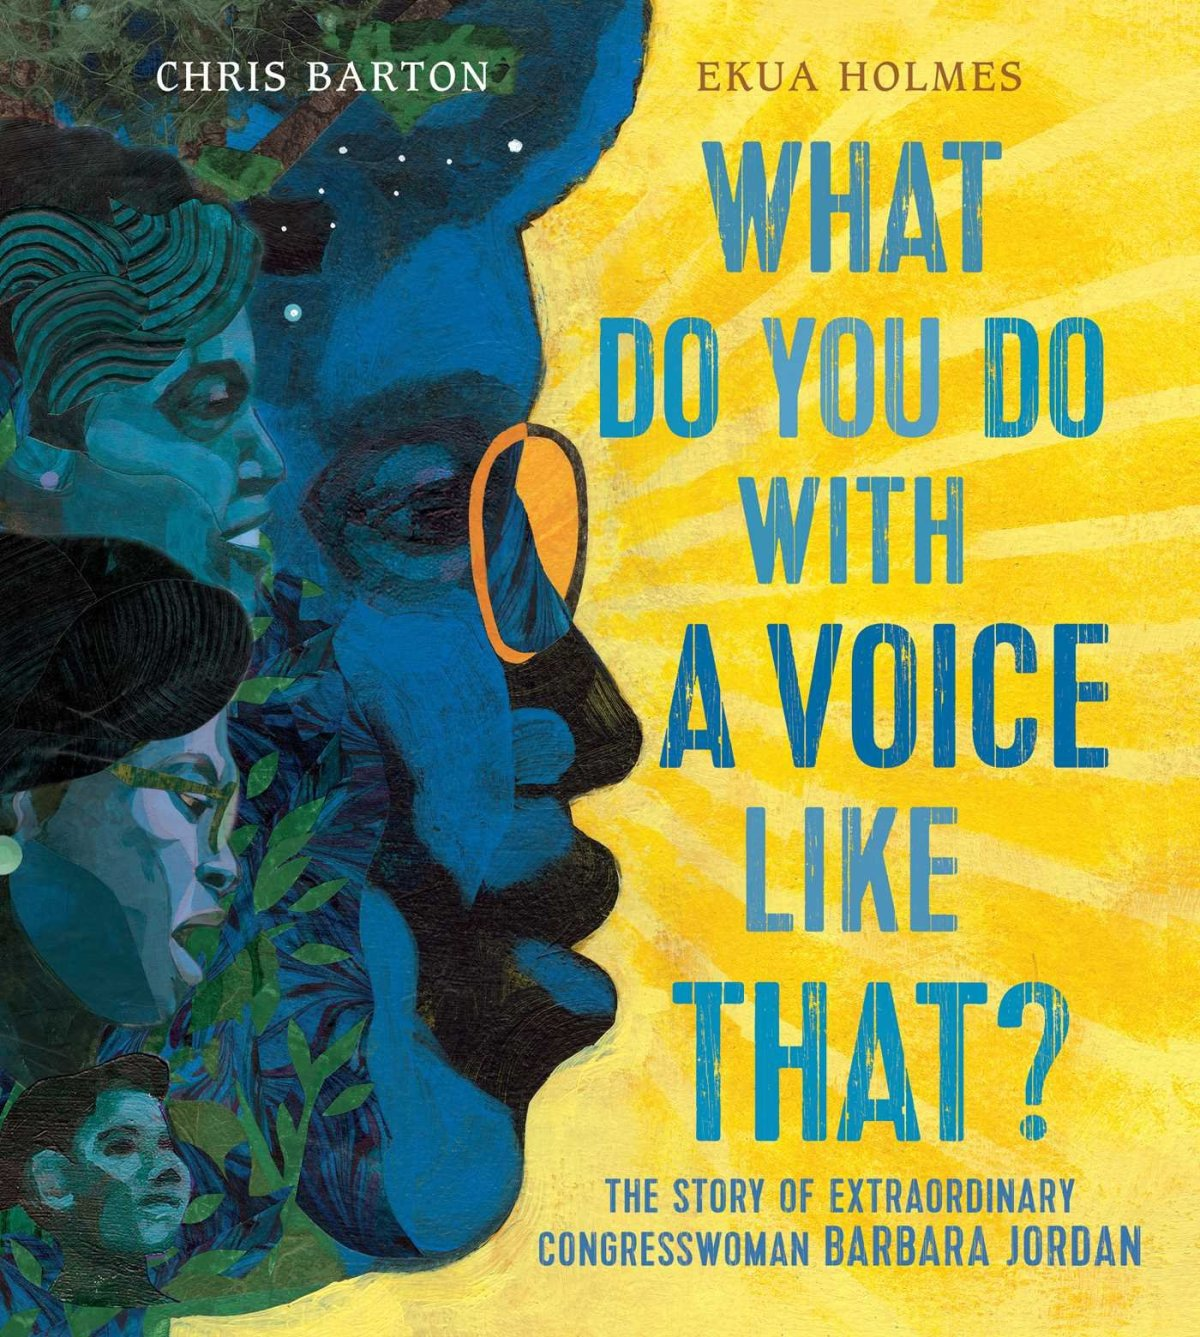 what do you do with a voice like that cover image